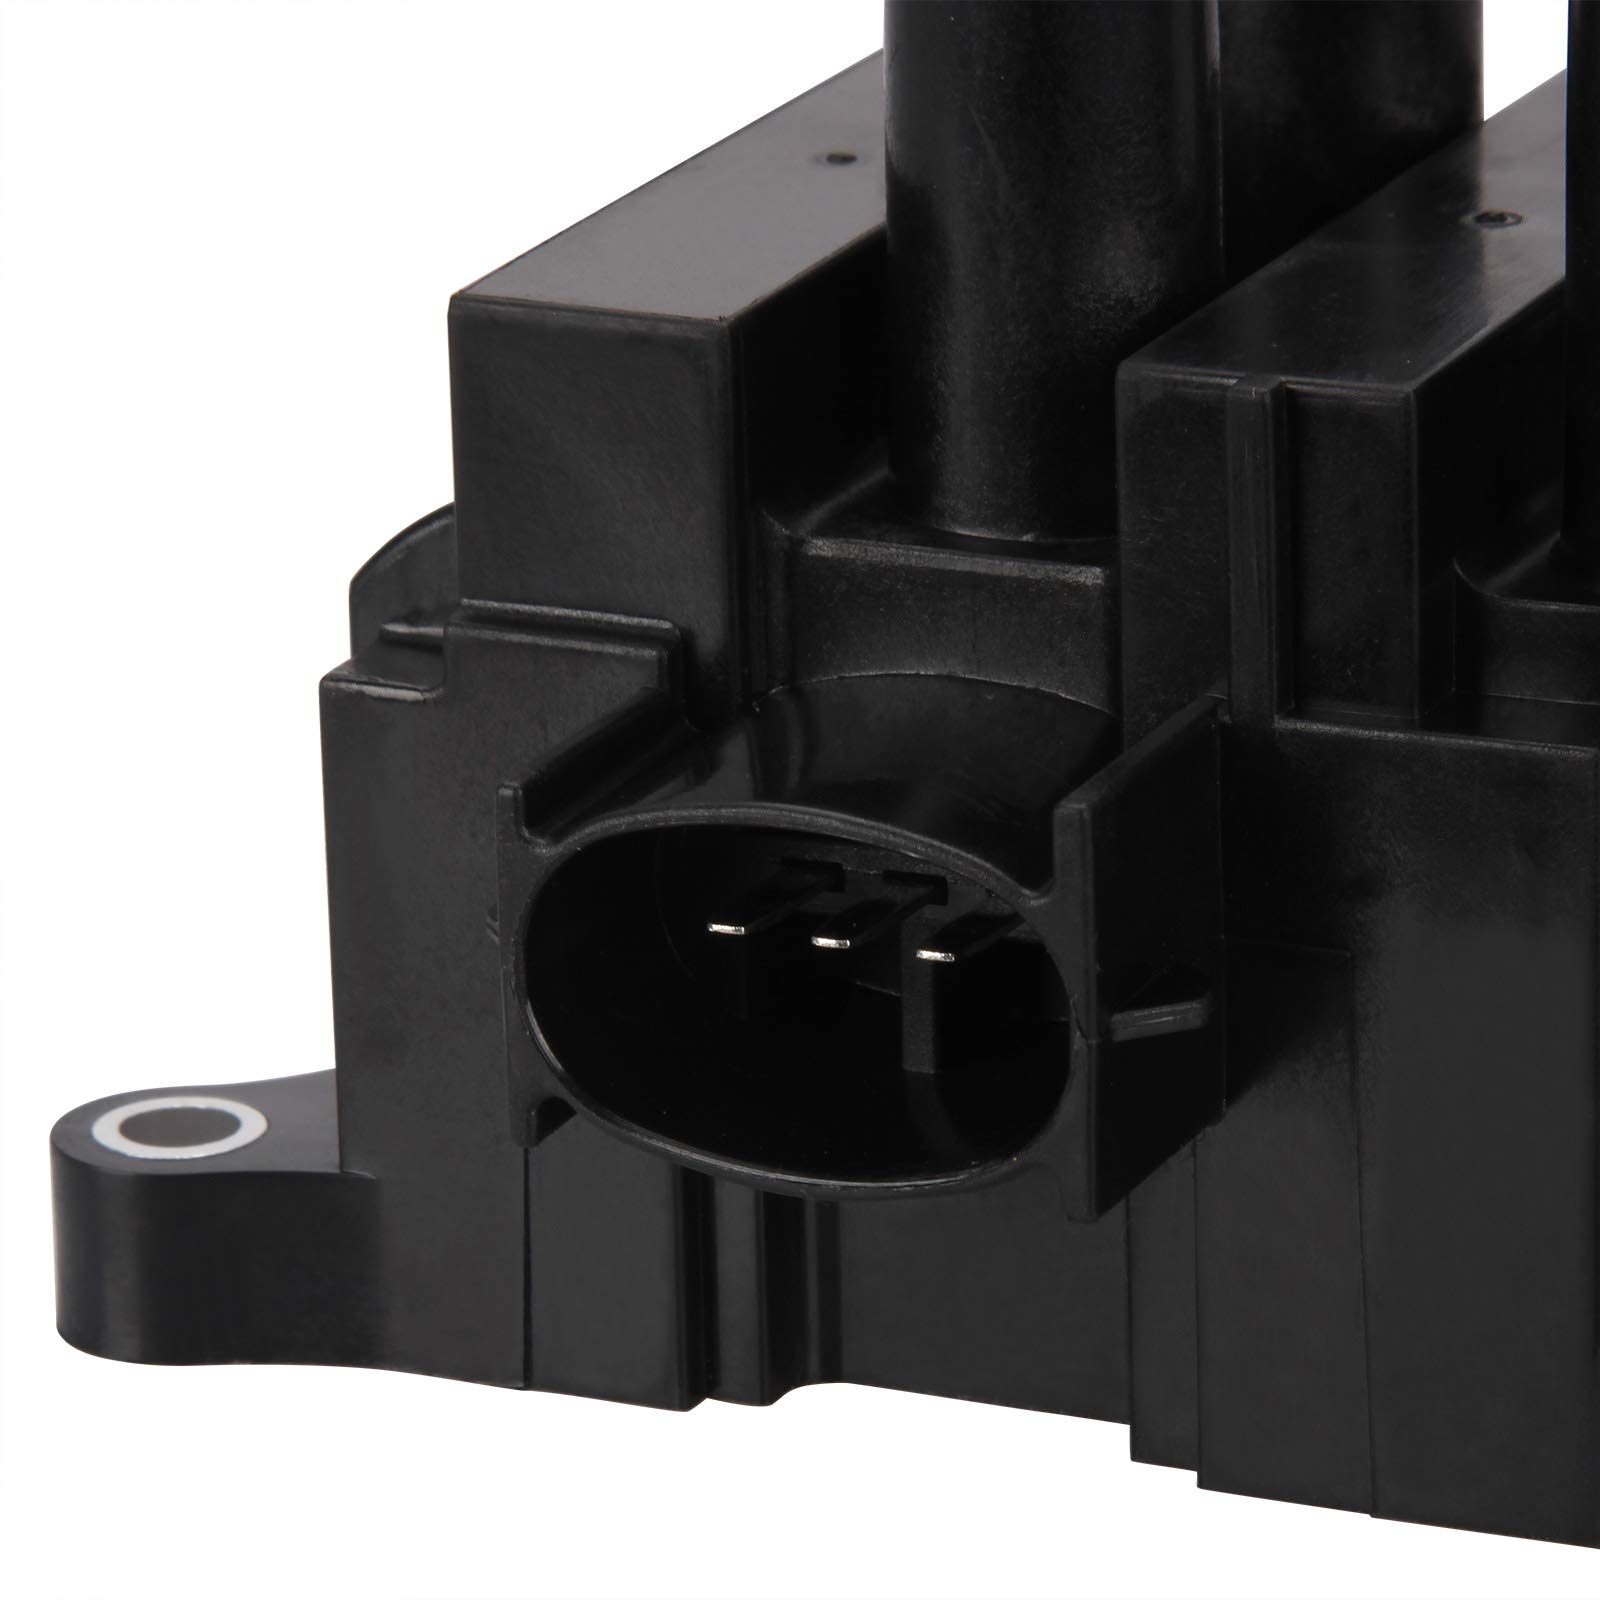 Twilight Garage Ignition Coil Pack 988F12029AA 988F12029AB For Focus Fiesta Tourneo Puma Transit Connect 121 Tribute